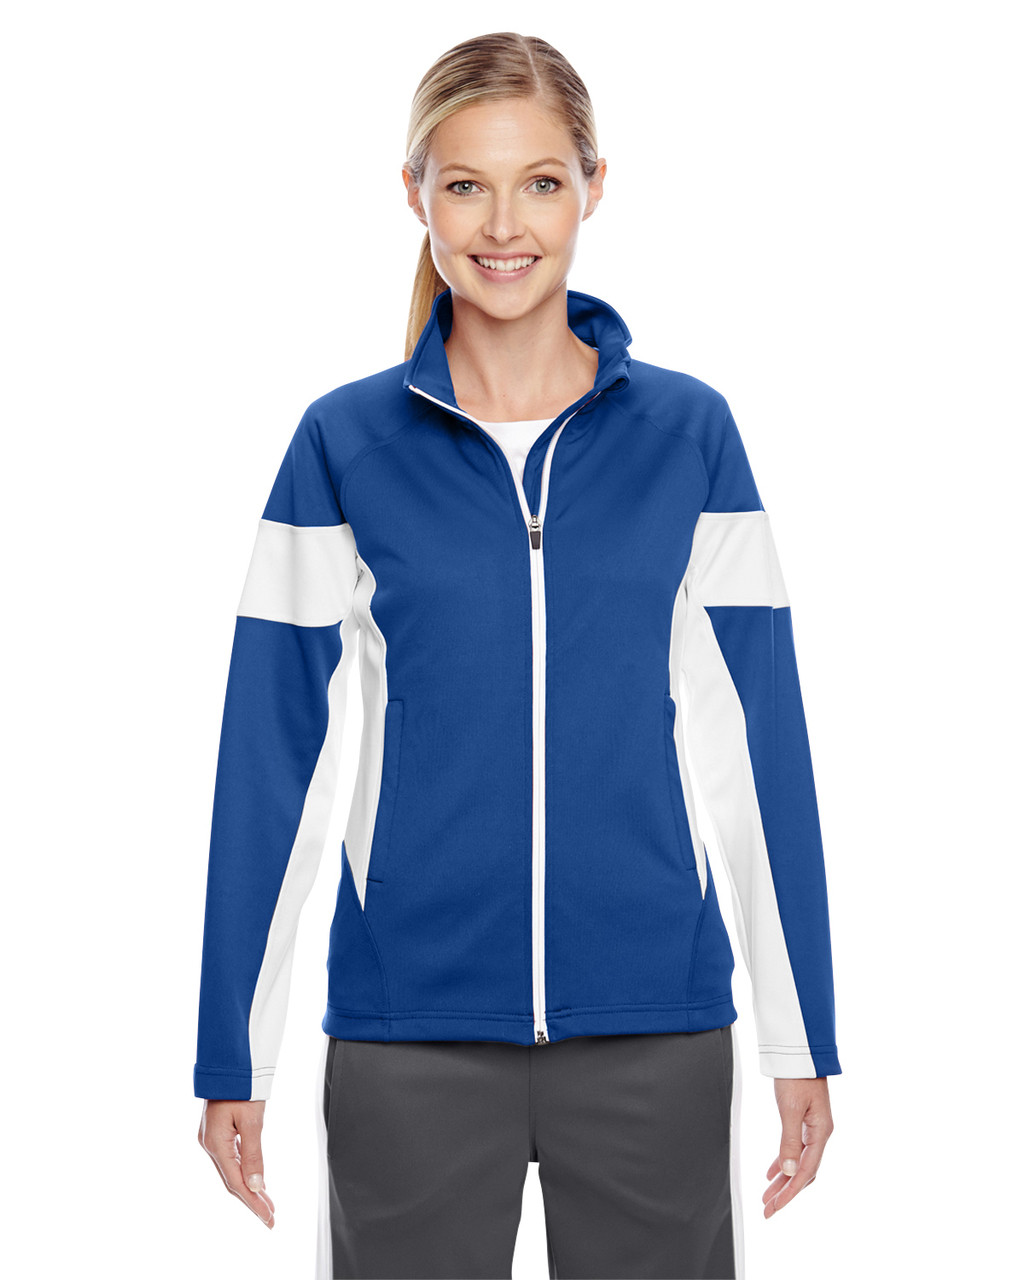 Royal/White - TT34W Team 365 Ladies' Elite Performance Full-Zip Jacket